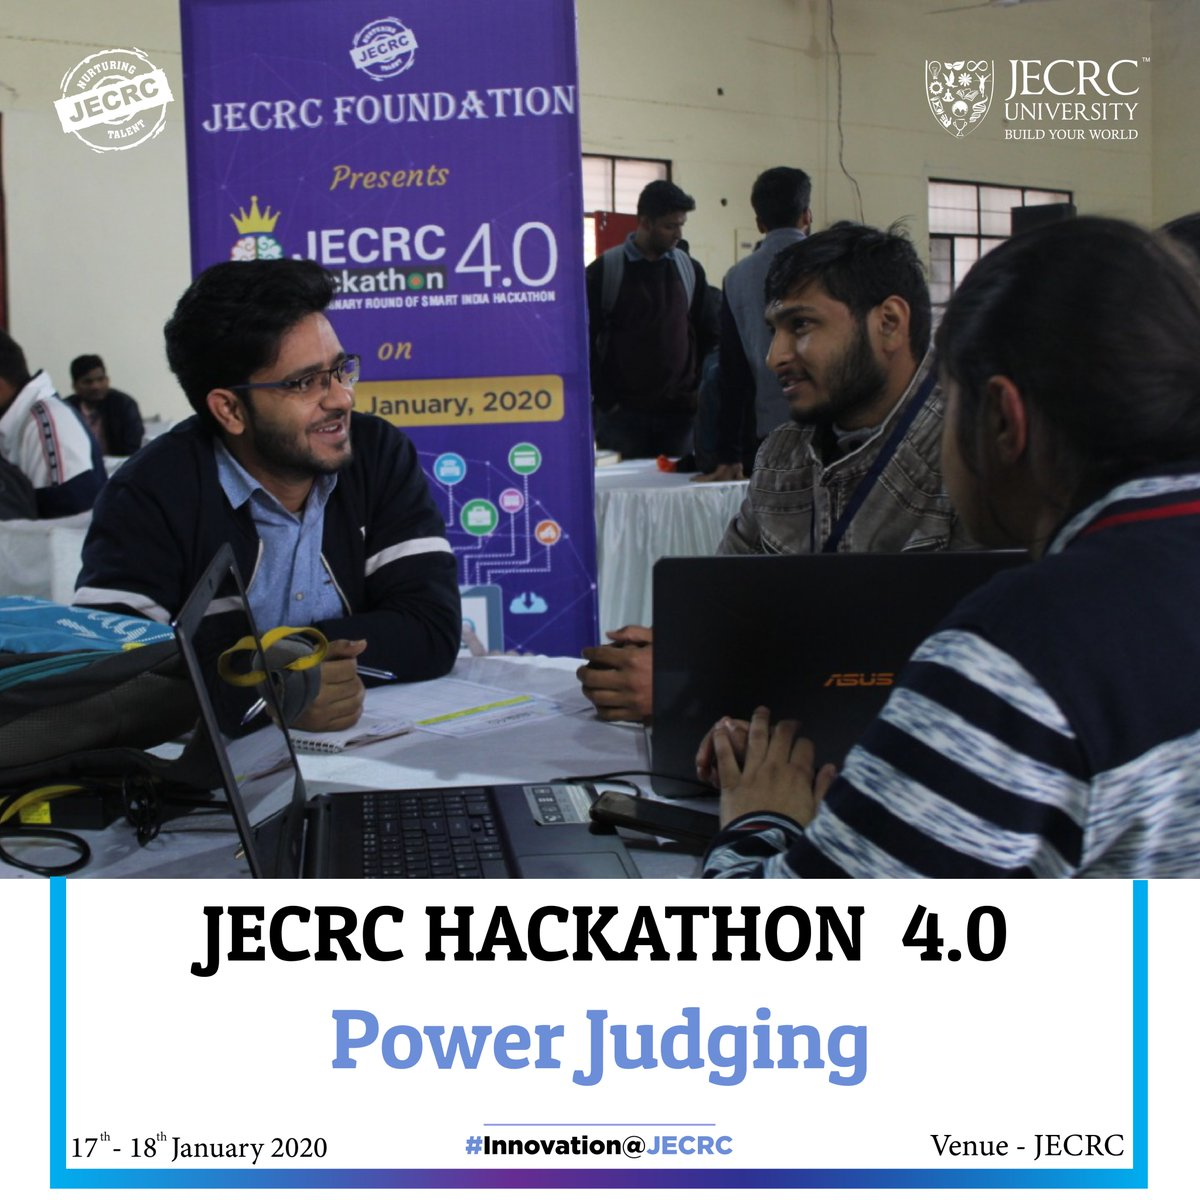 In the final attempt to bag the position of #winner at #JECRCHackathon 4.0, participants put their best foot forward in the final power judgment round. Judges went through each team's unique virtue and graded them on all parameters of working and usability #SIH2020 #i4c #AICTEpic.twitter.com/3uFB1ijflD